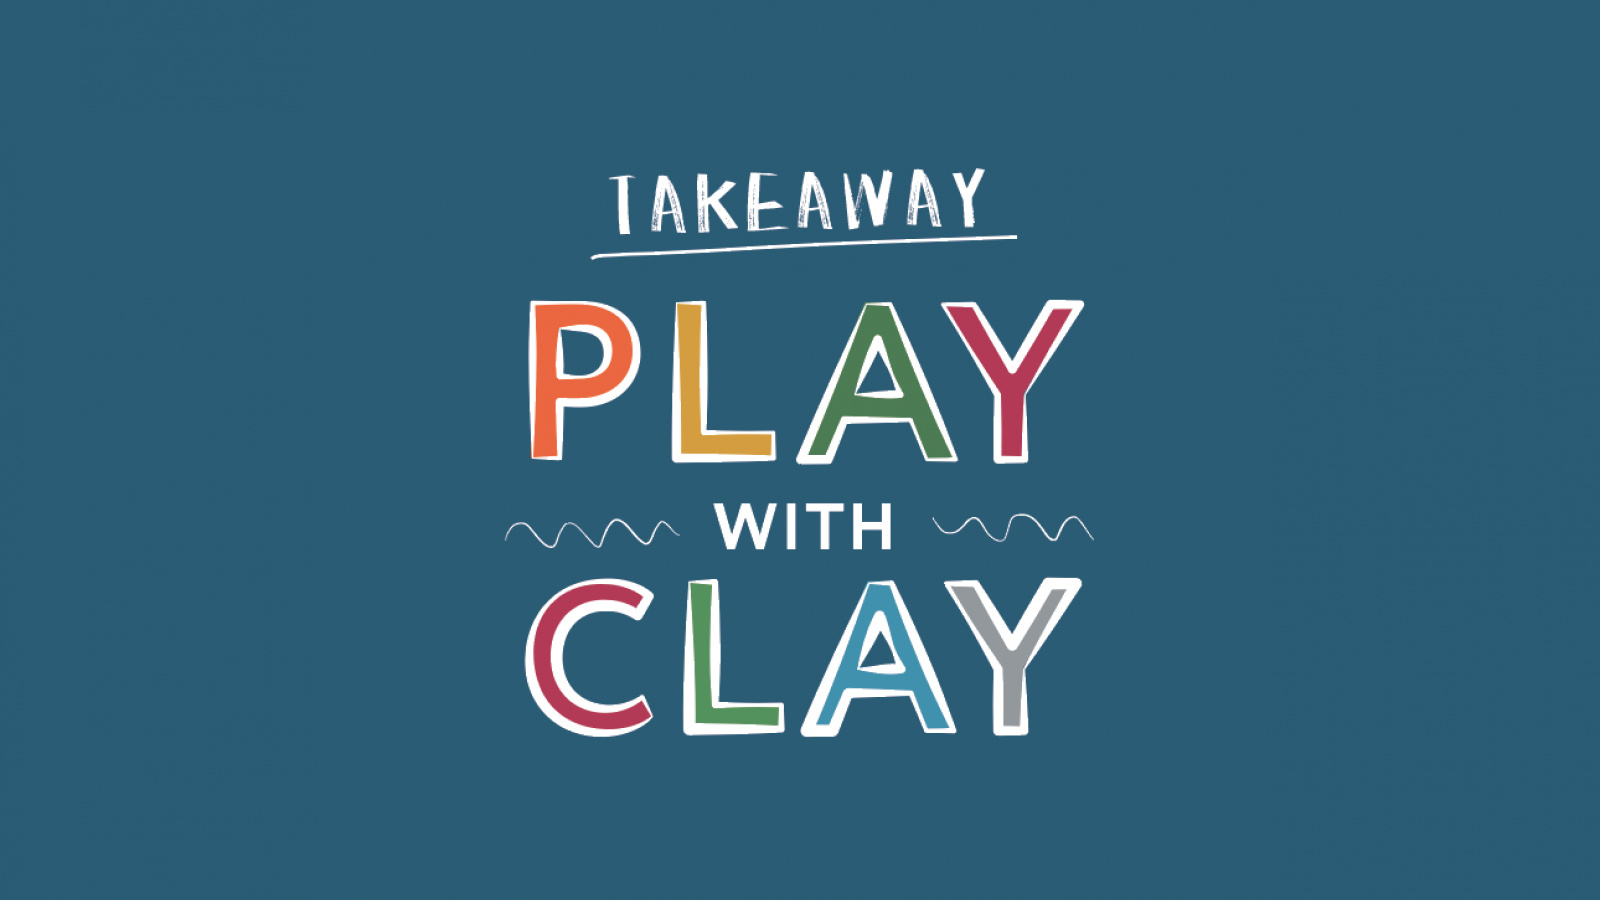 Takeaway Play-with-Clay